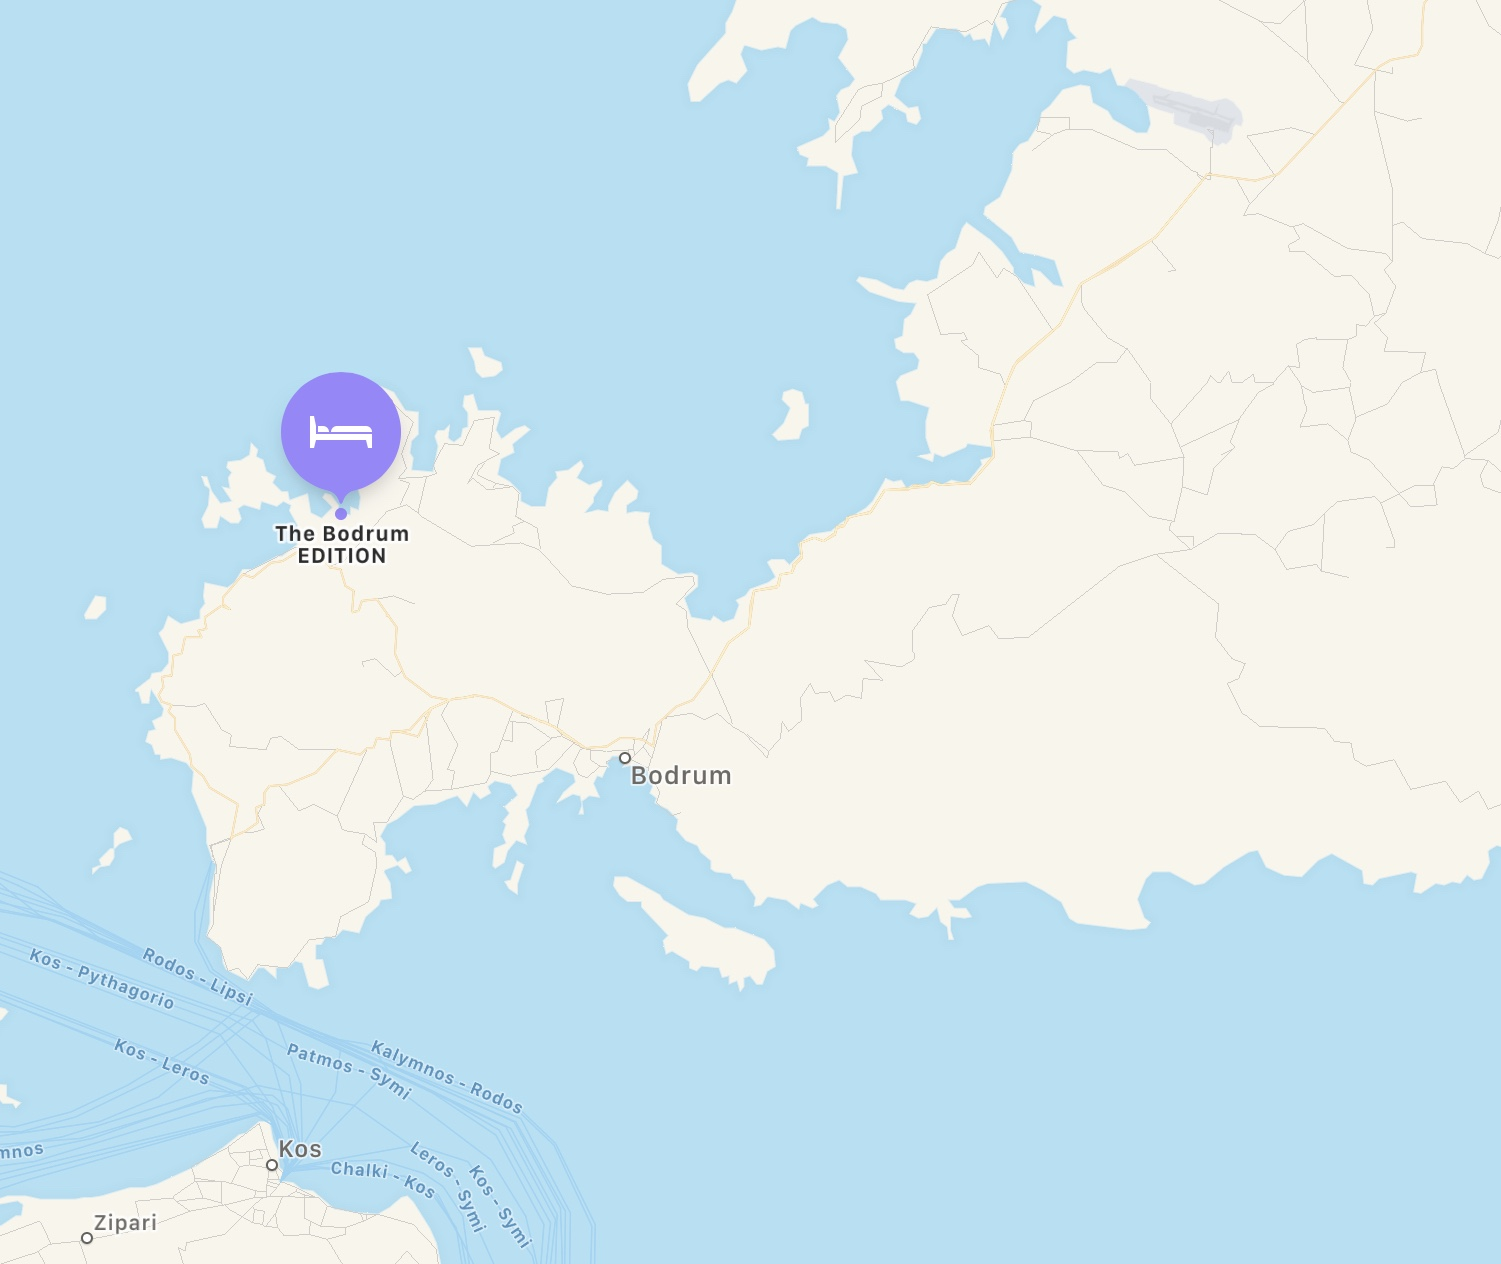 The Bodrum EDITION - Location